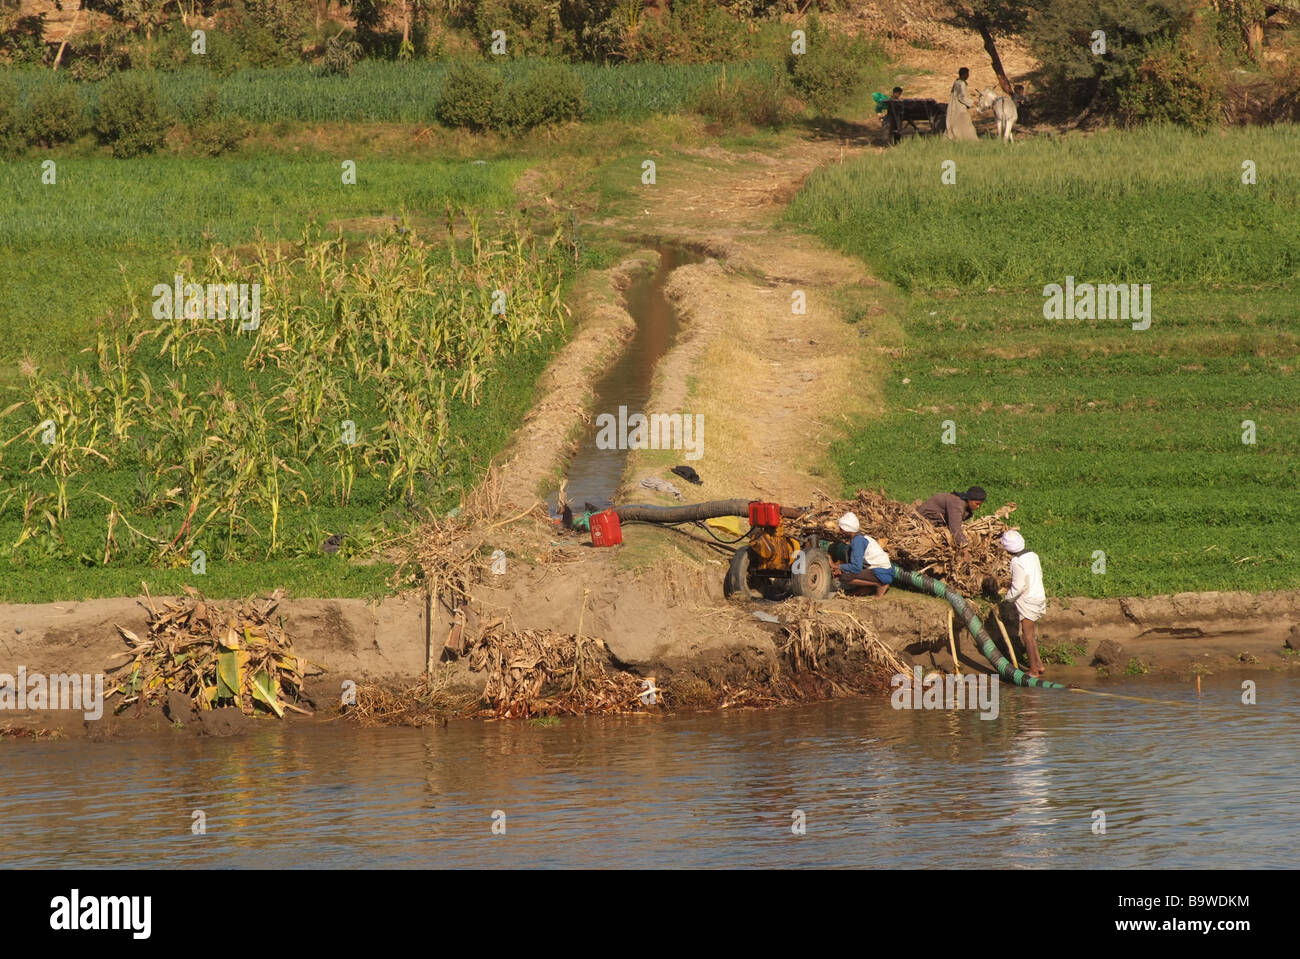 egypt-nile-river-an-irrigation-system-pumps-water-from-the-nile-to-B9WDKM.jpg